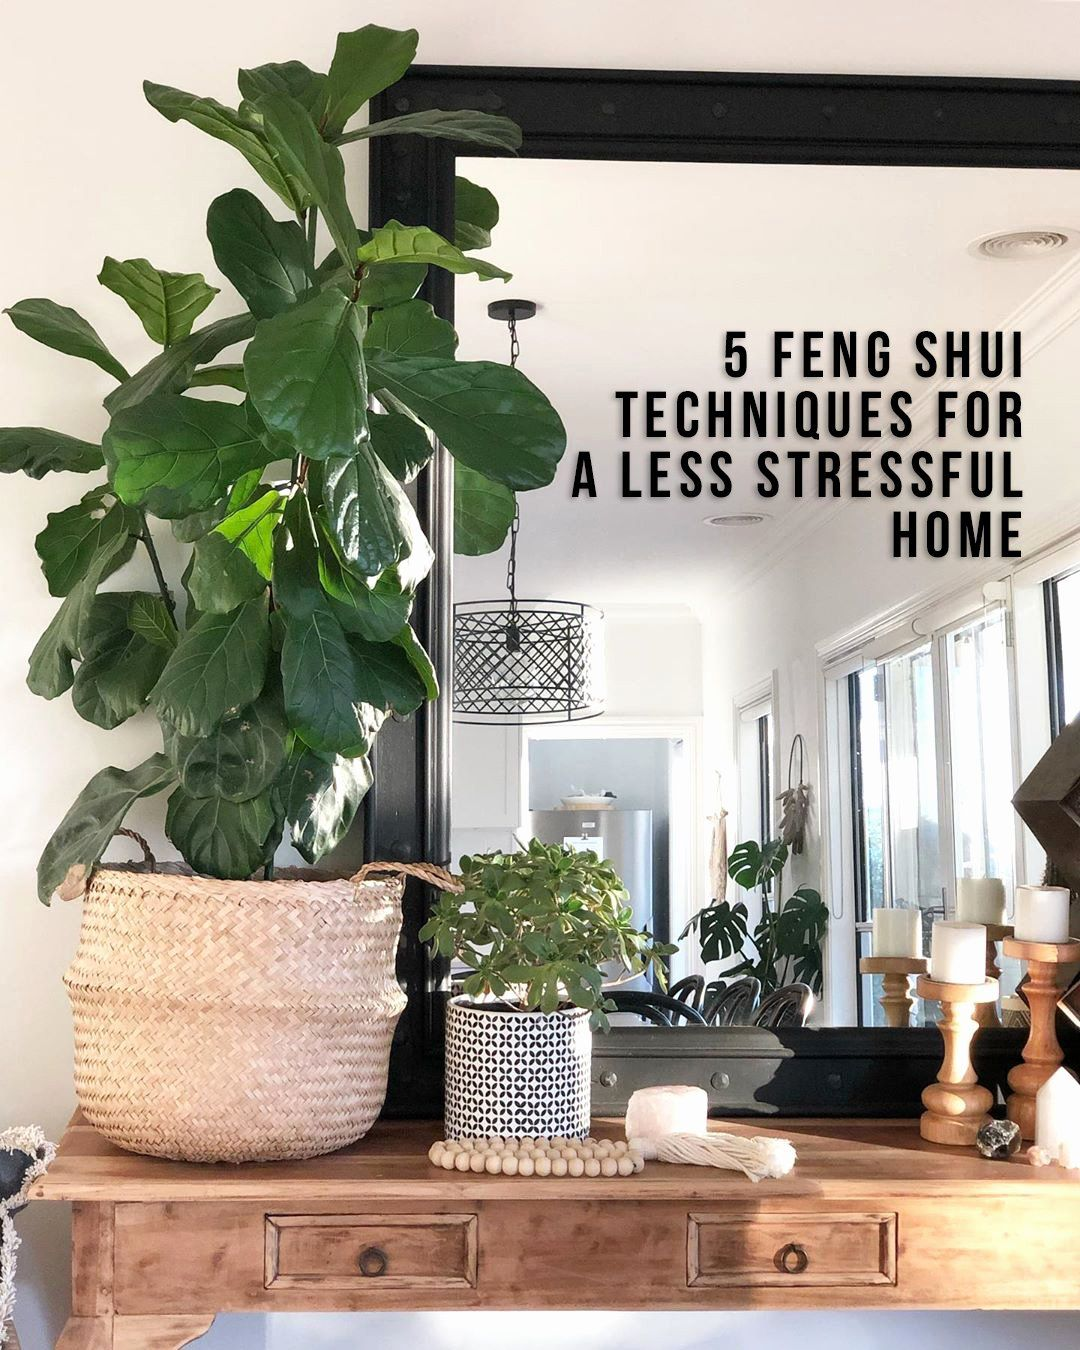 Feng Shui Plants In Living Room Awesome 5 Feng Shui Techniques For A Less Stressful Home In 2020 Feng Shui Bedroom Feng Shui House Feng Shui Plants #plants #in #living #room #feng #shui